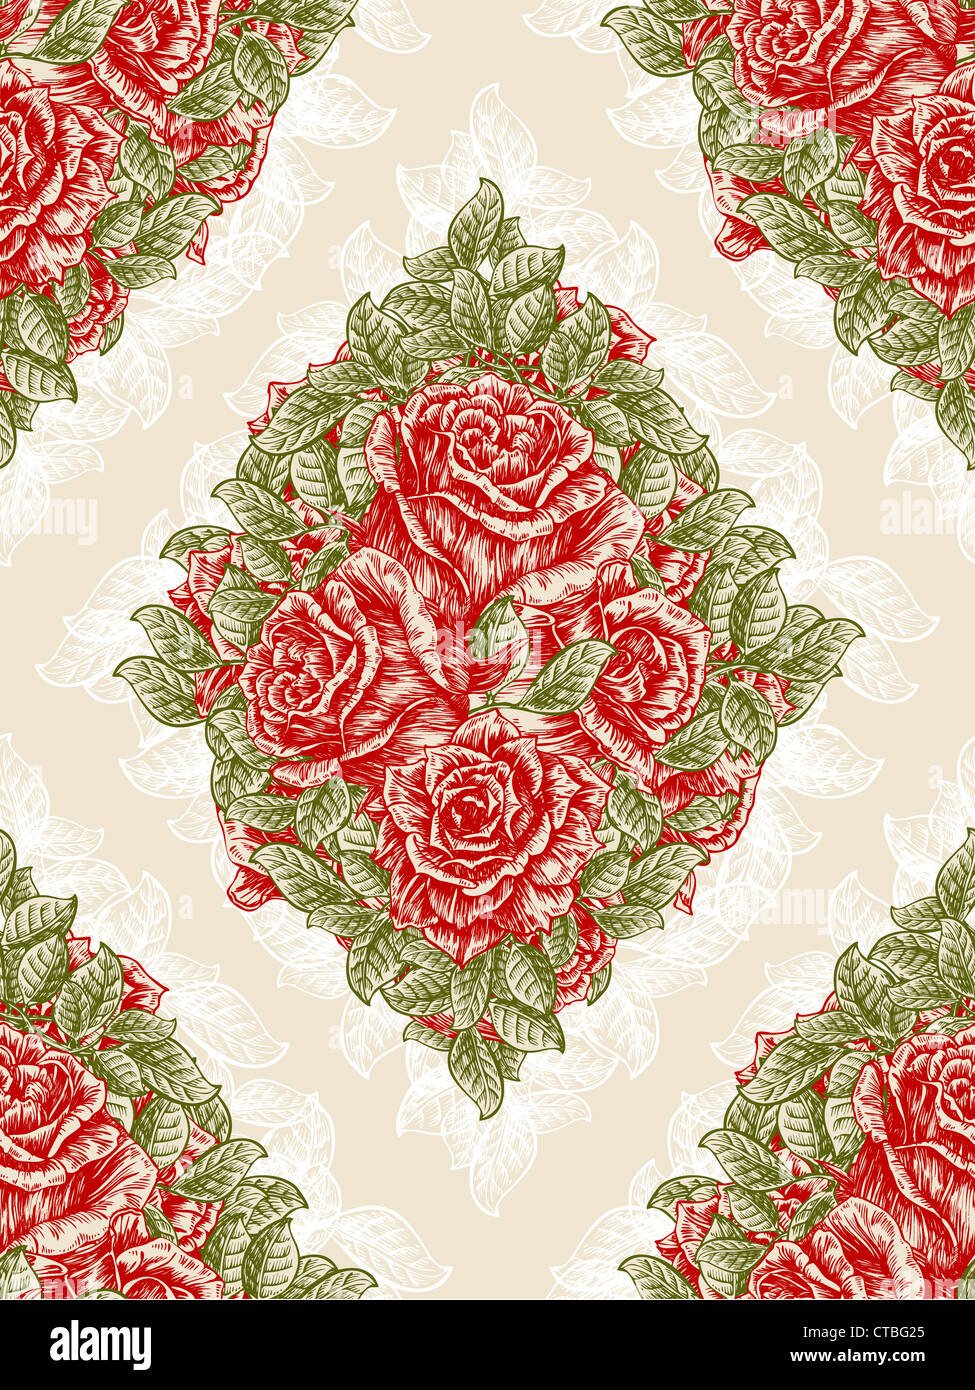 Vector Vintage Seamless Floral Wallpaper With Roses